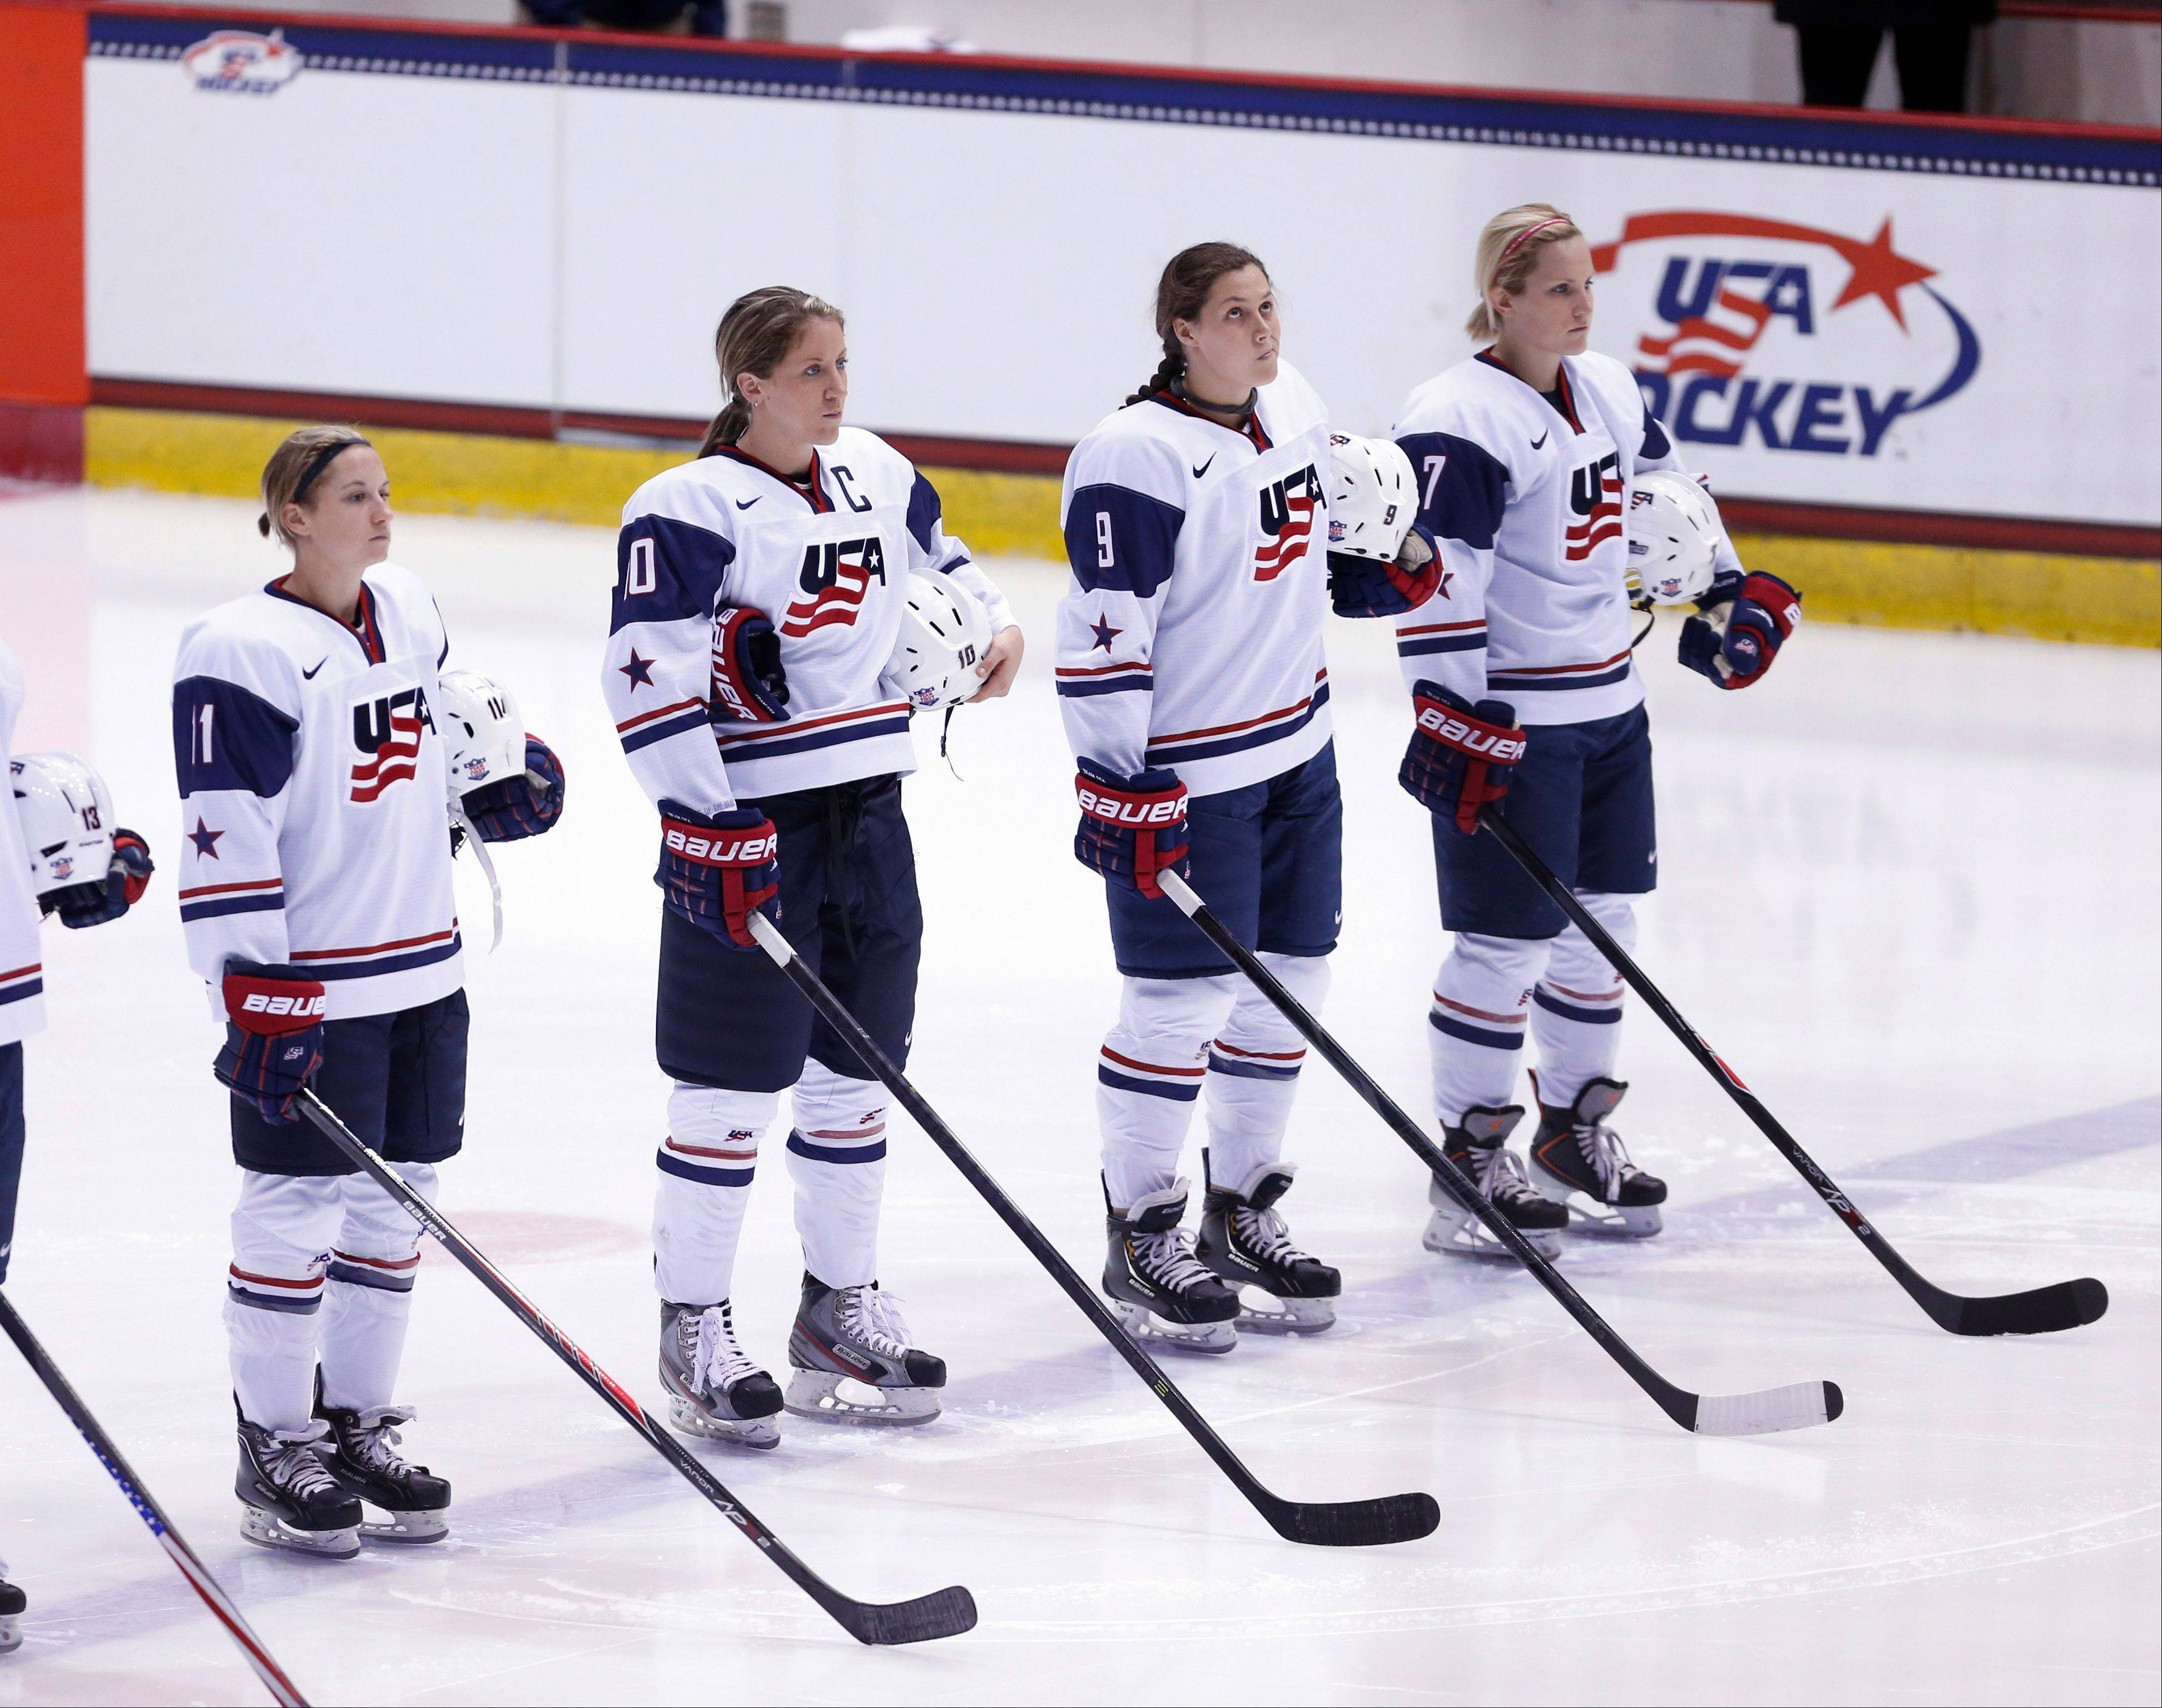 U.S. Women's Hockey Team member Megan Bozek, of Buffalo Grove, wearing jersey number 9, stands with her teammates during the national anthems before a Four Nations Cup women's hockey game against Sweden last November in Lake Placid, N.Y.